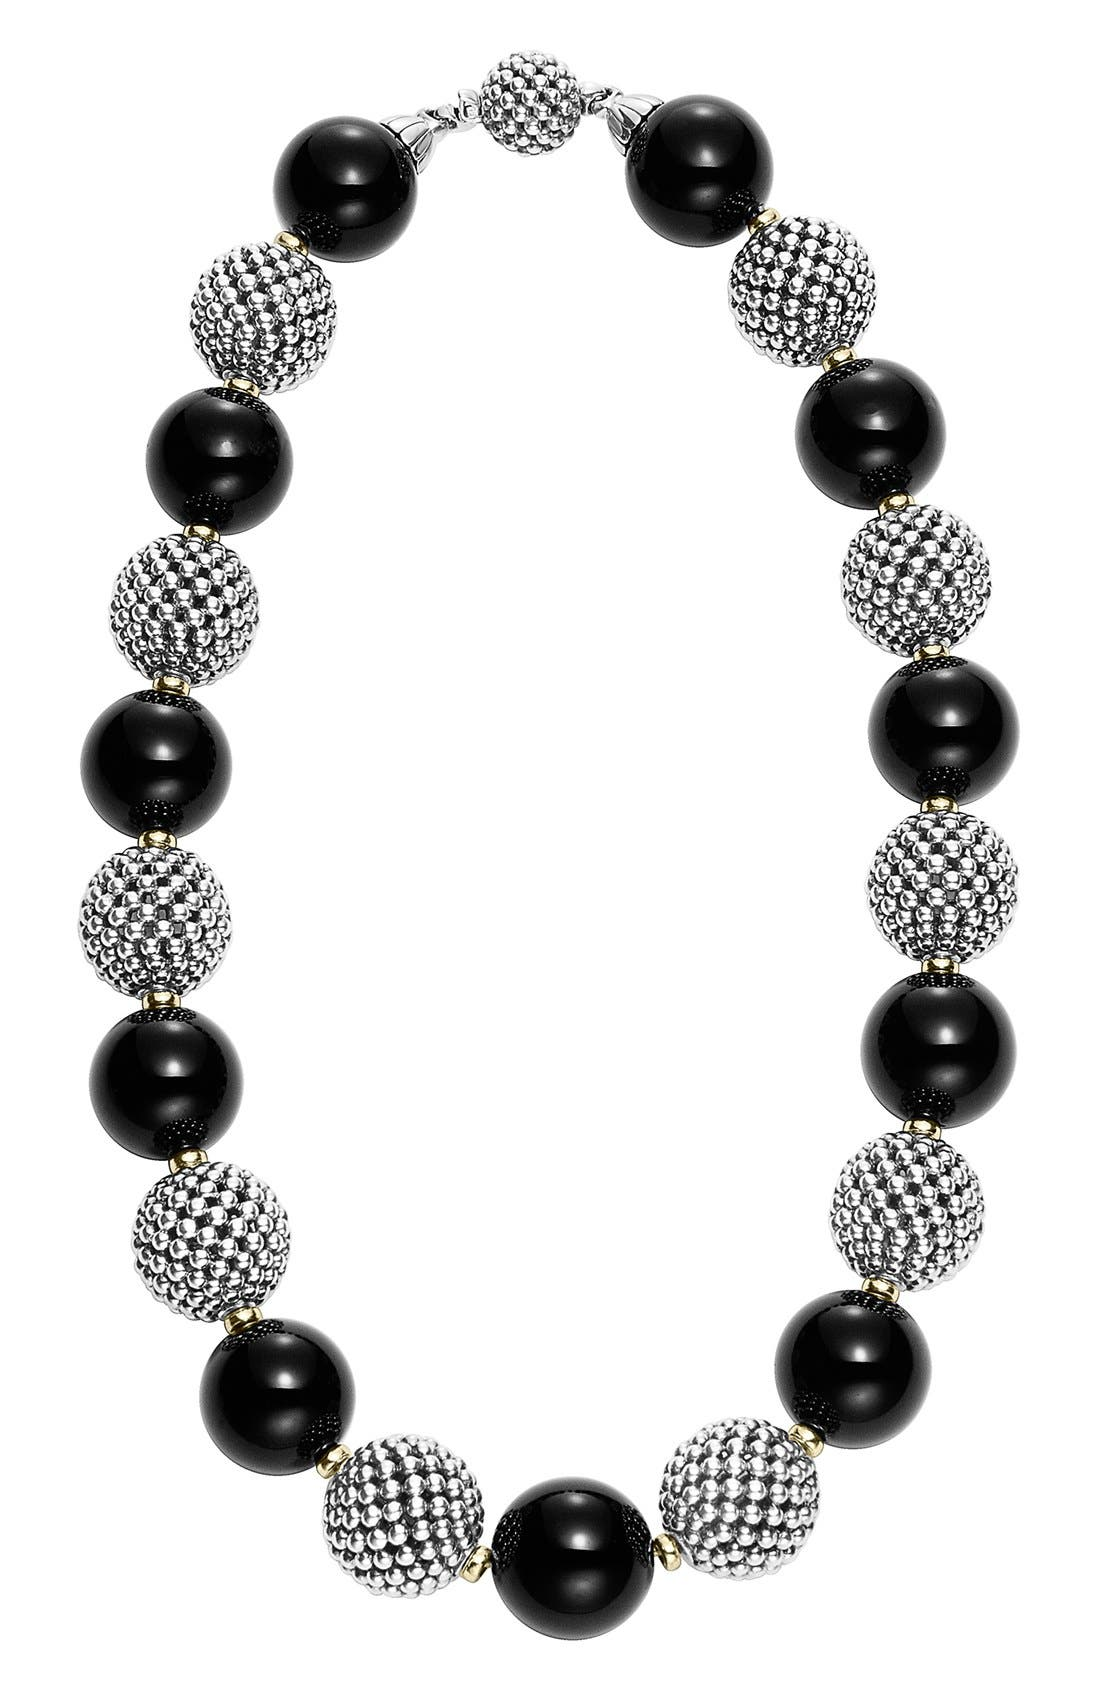 'Black Caviar' Beaded Necklace,                             Main thumbnail 1, color,                             040